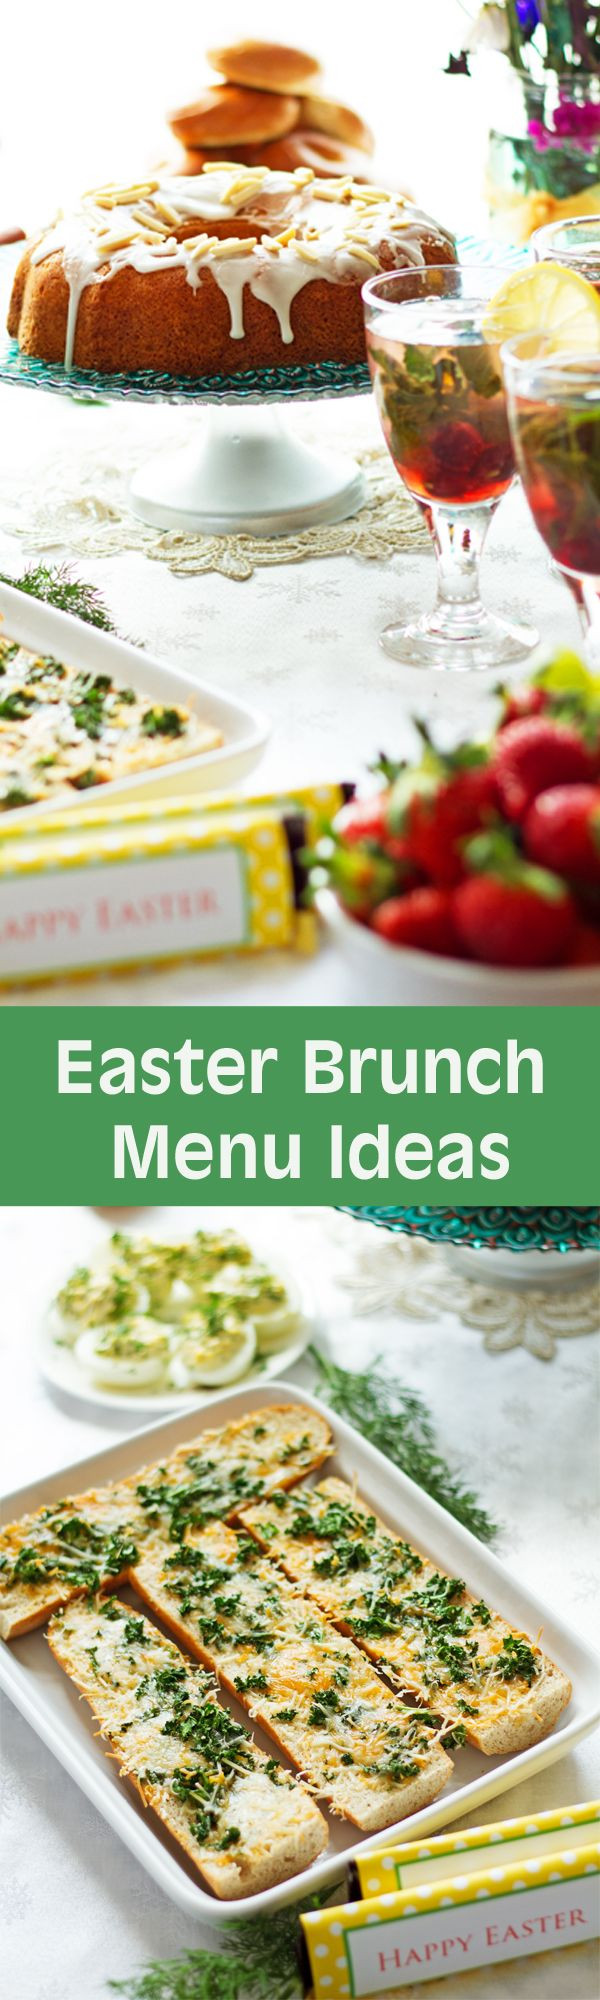 Easter Dinner Menu Ideas And Recipes  Easter Brunch Menu Ideas with Recipes